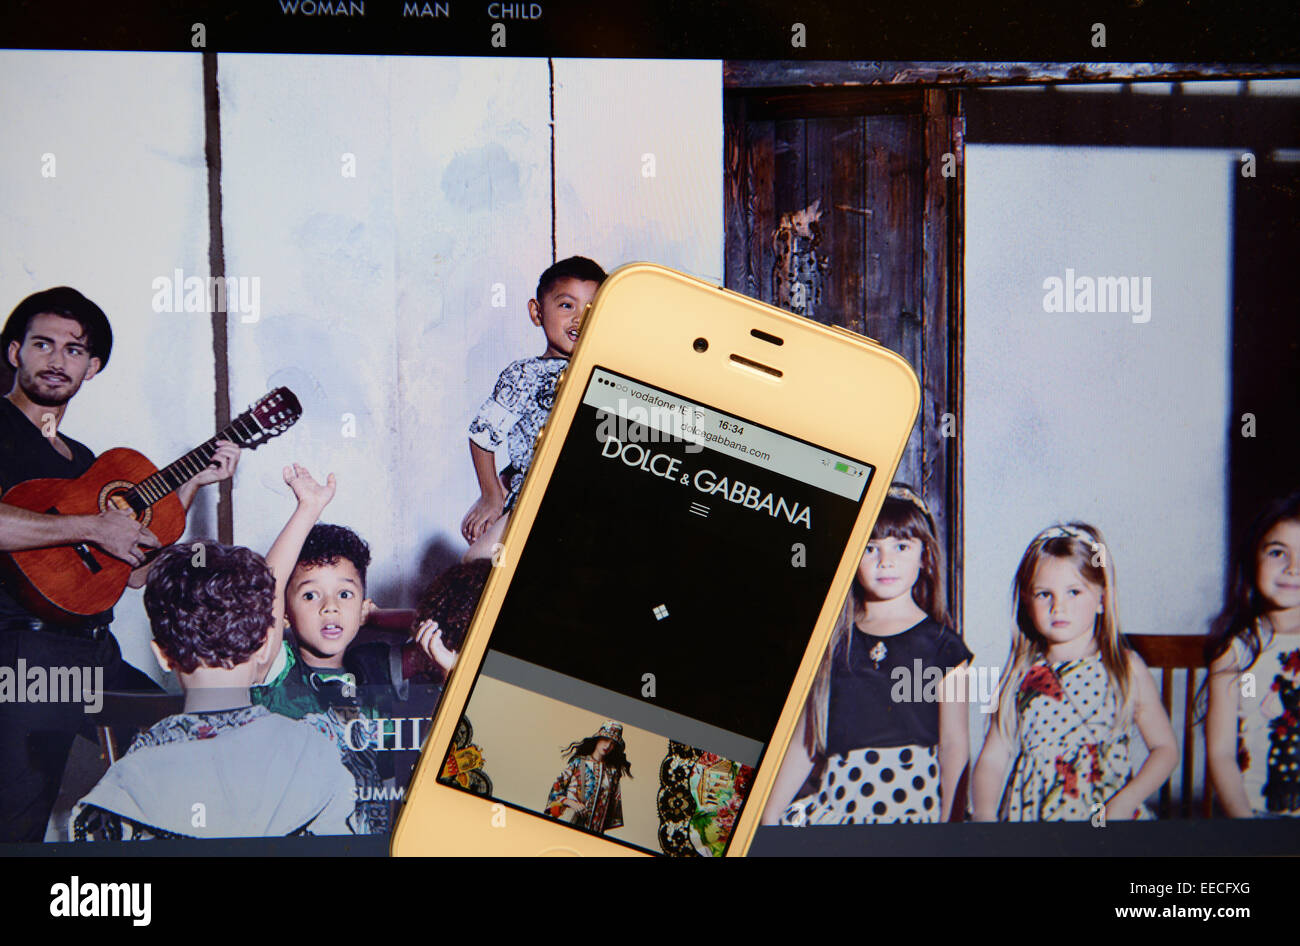 Dolce and Gabbana Website and IPhone - Stock Image